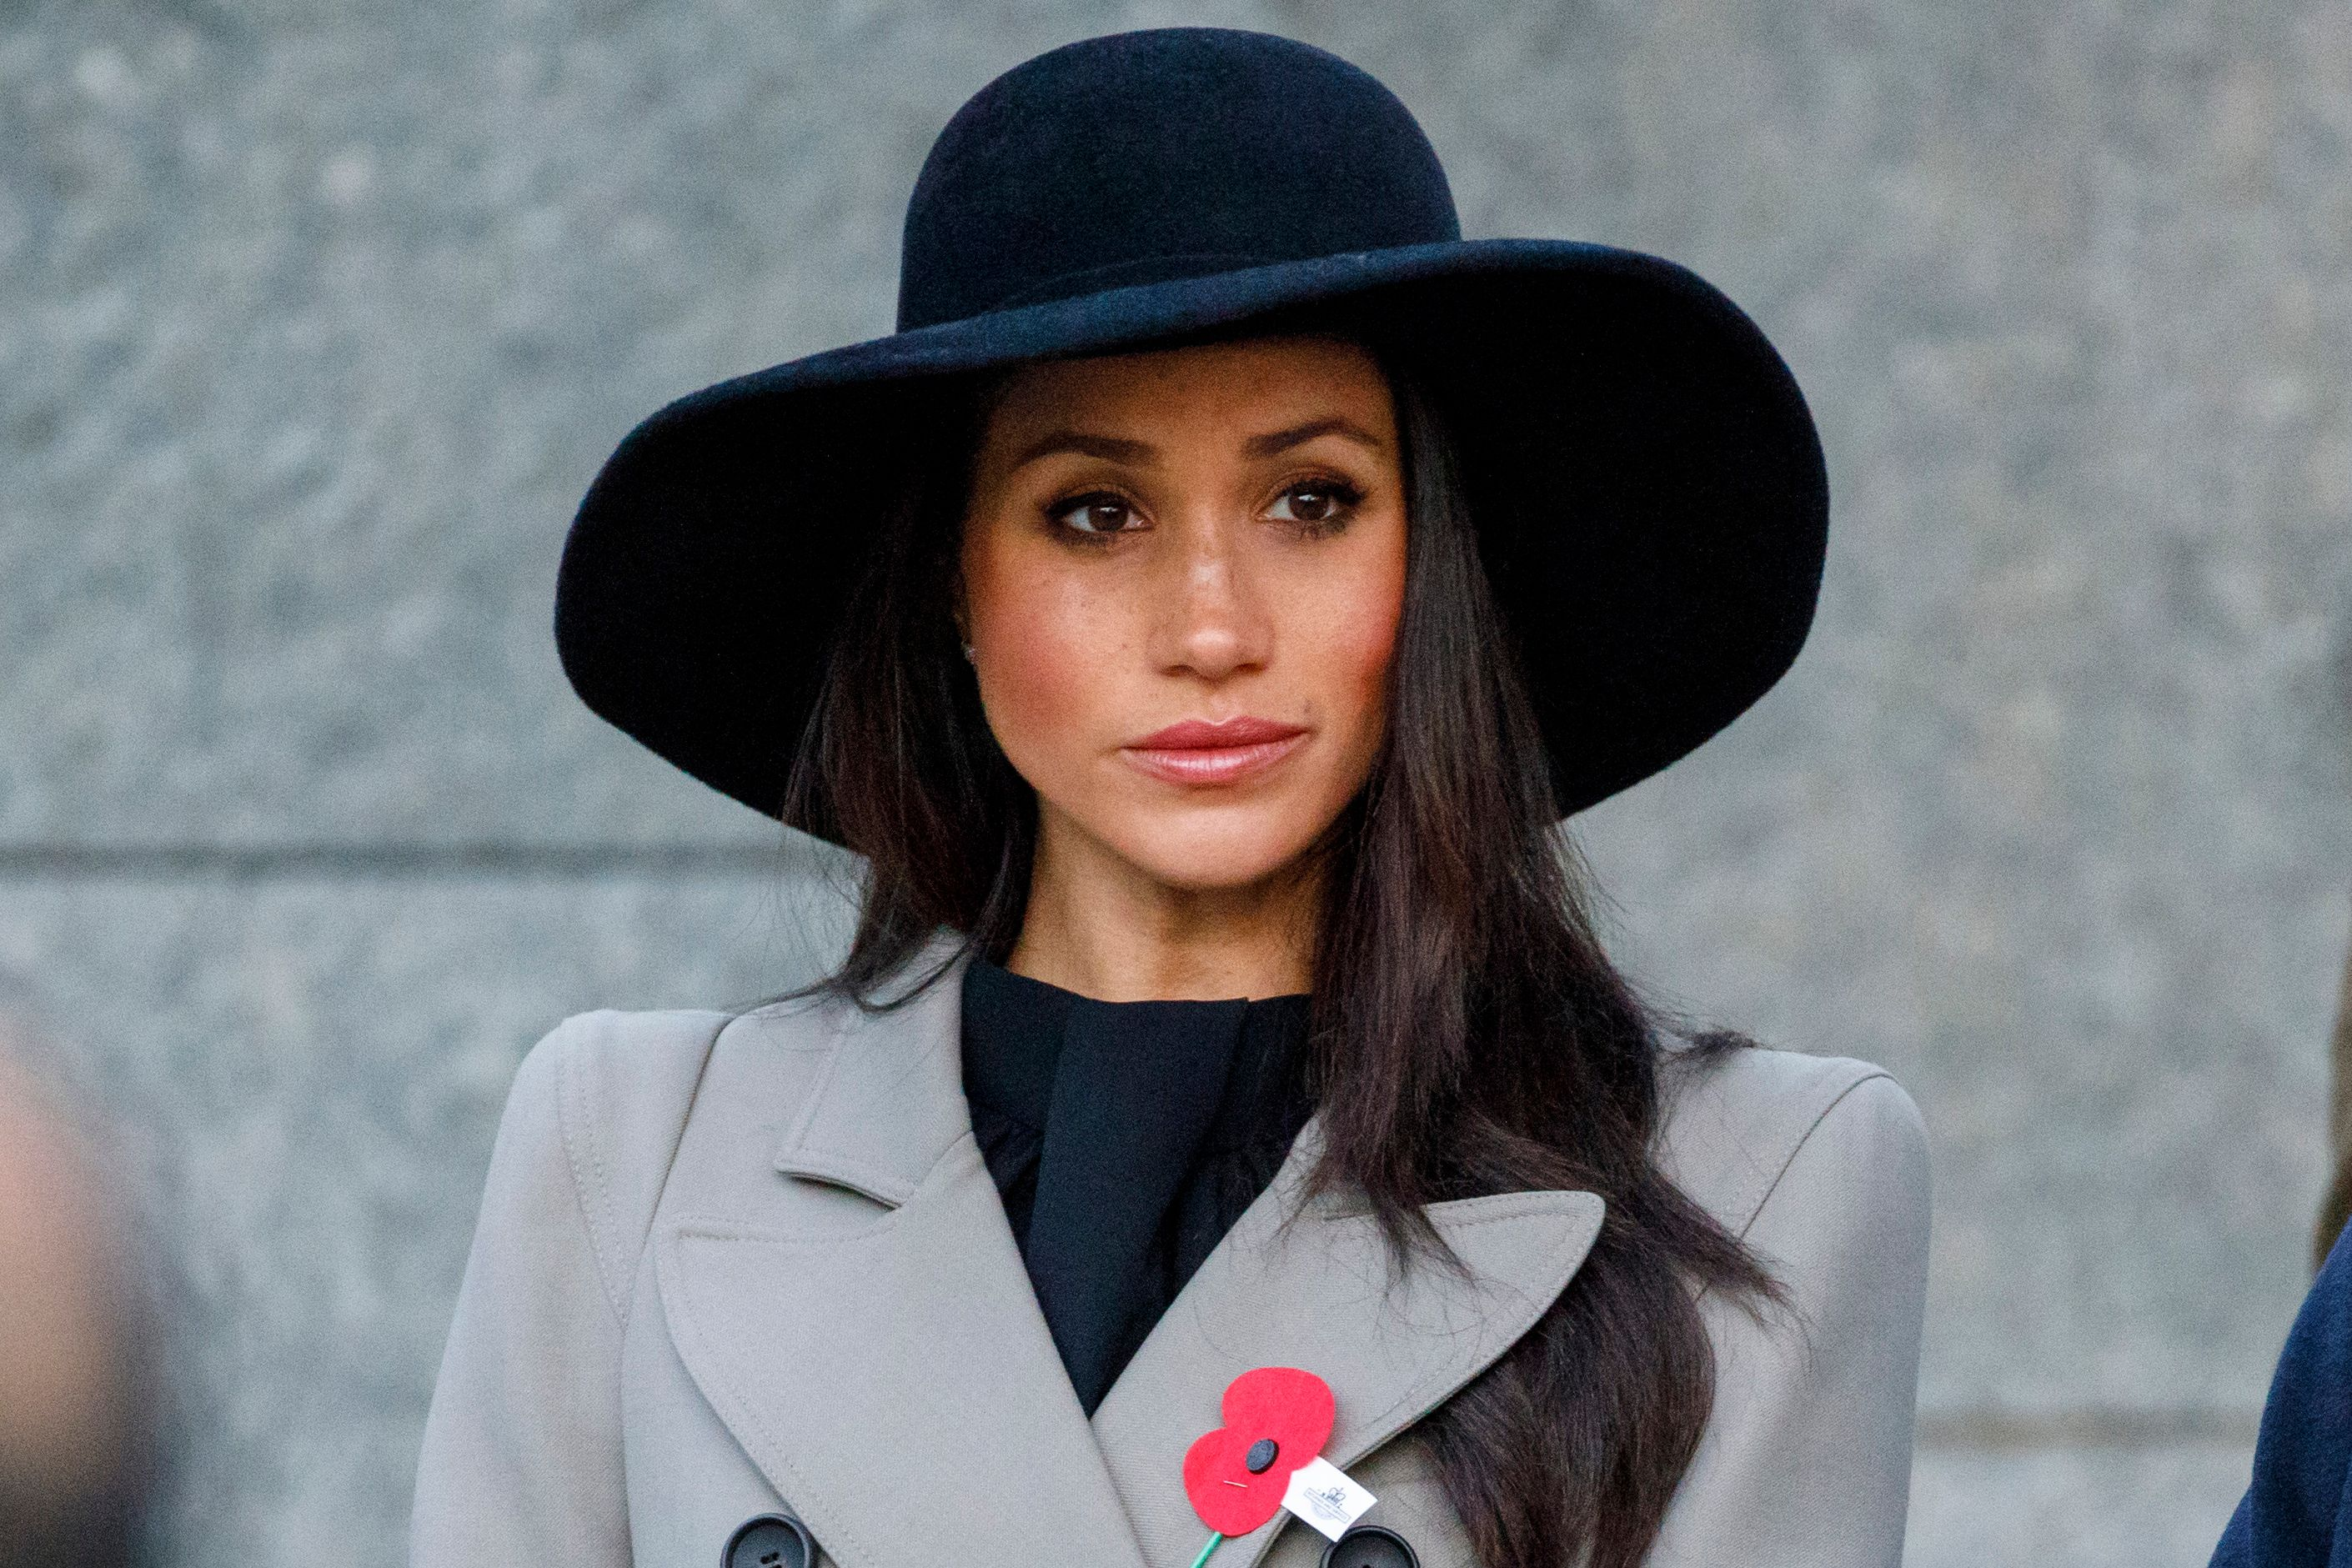 Meghan Markle Went All the Way to Canada Just to Avoid the Queen